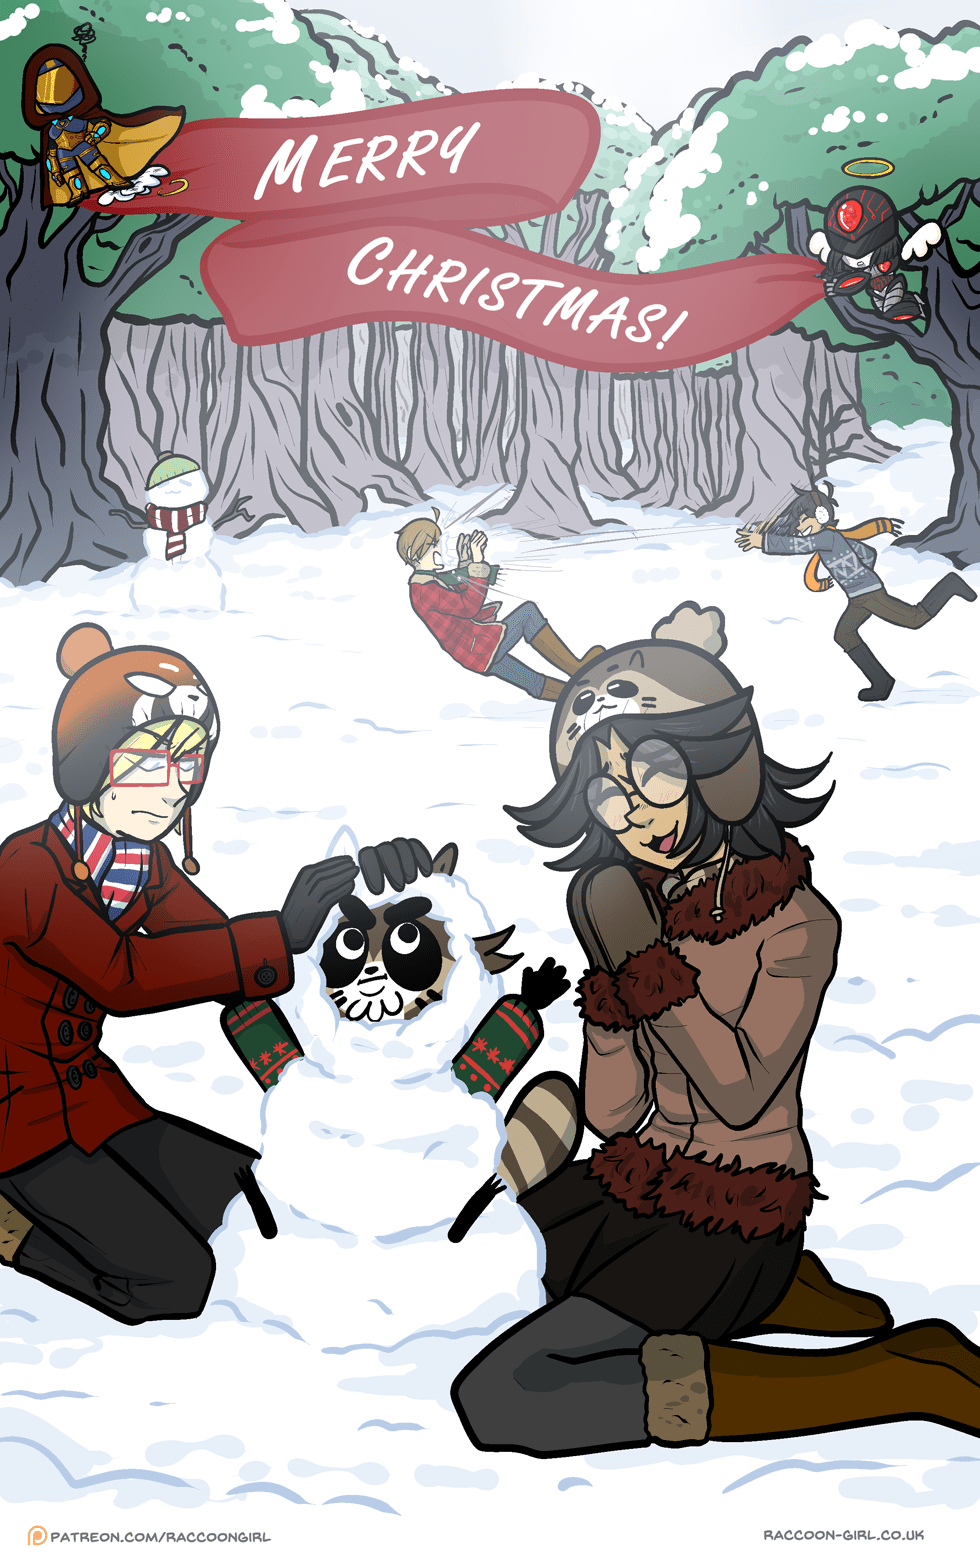 Never snowball fight with your super strong bf